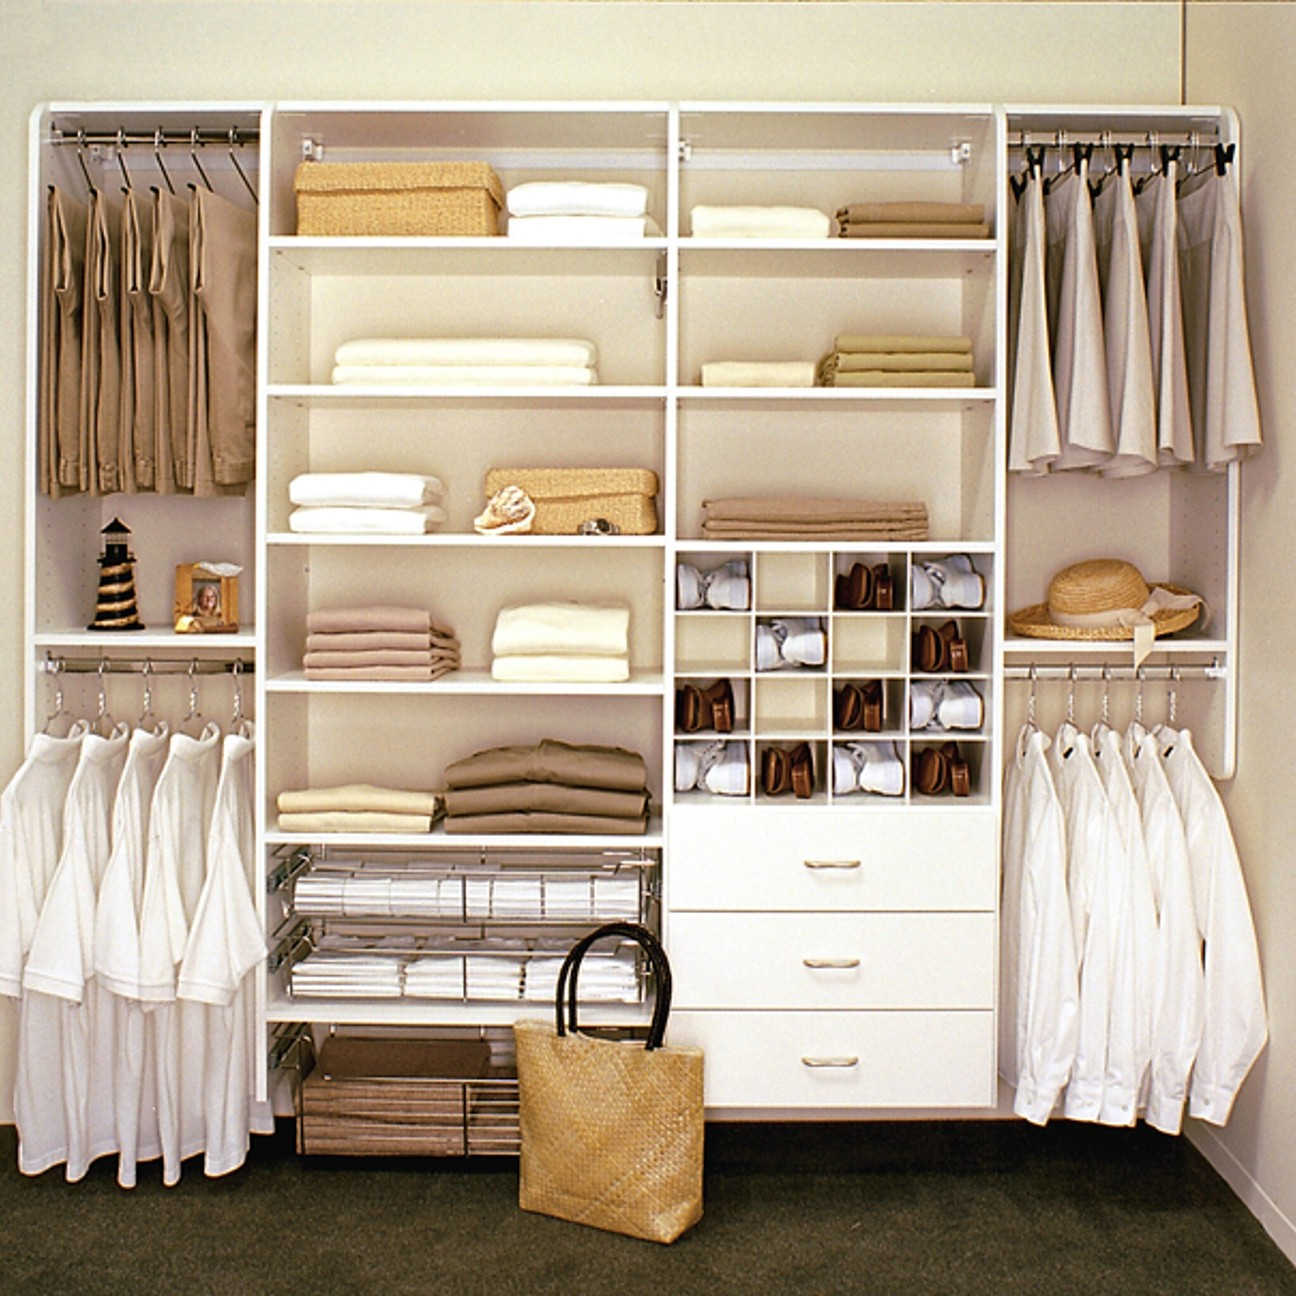 walk-in-linen-closet-design-photo-14